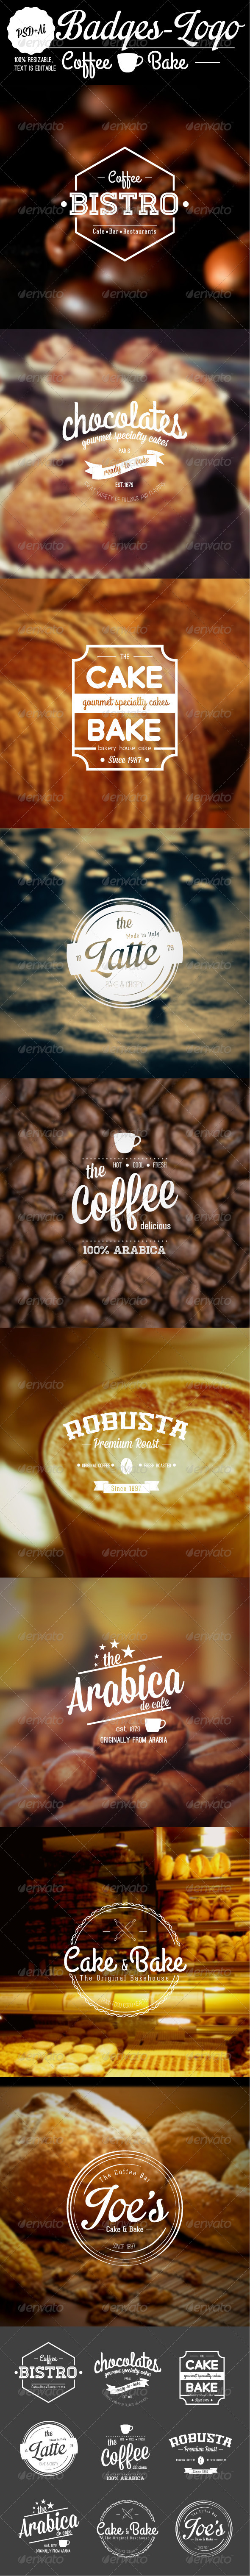 GraphicRiver 9 Badge-Logo Coffee and Bake 5663545